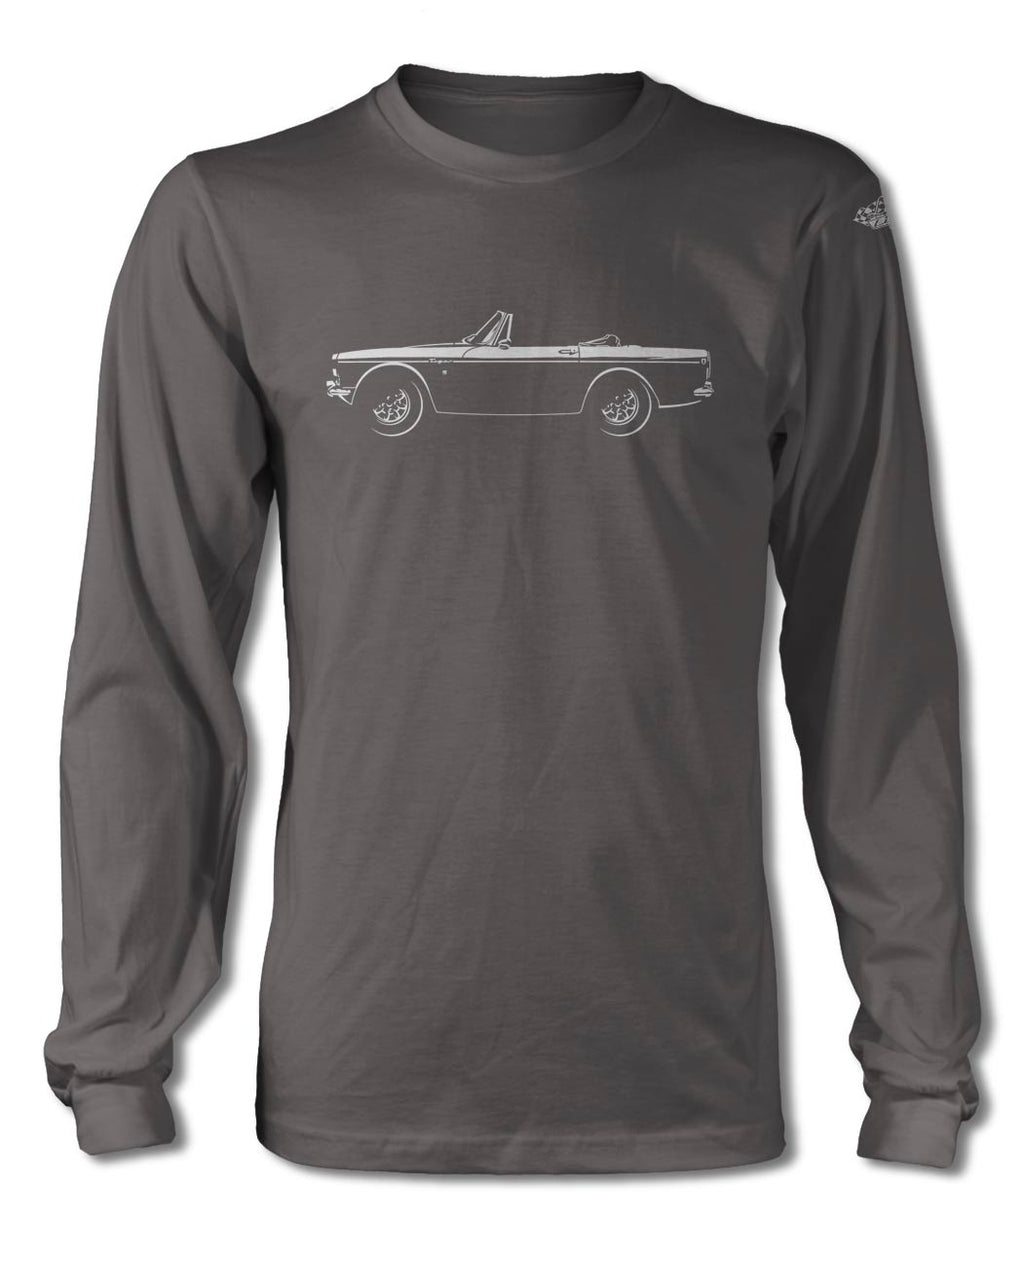 Sunbeam Tiger Convertible T-Shirt - Long Sleeves - Side View